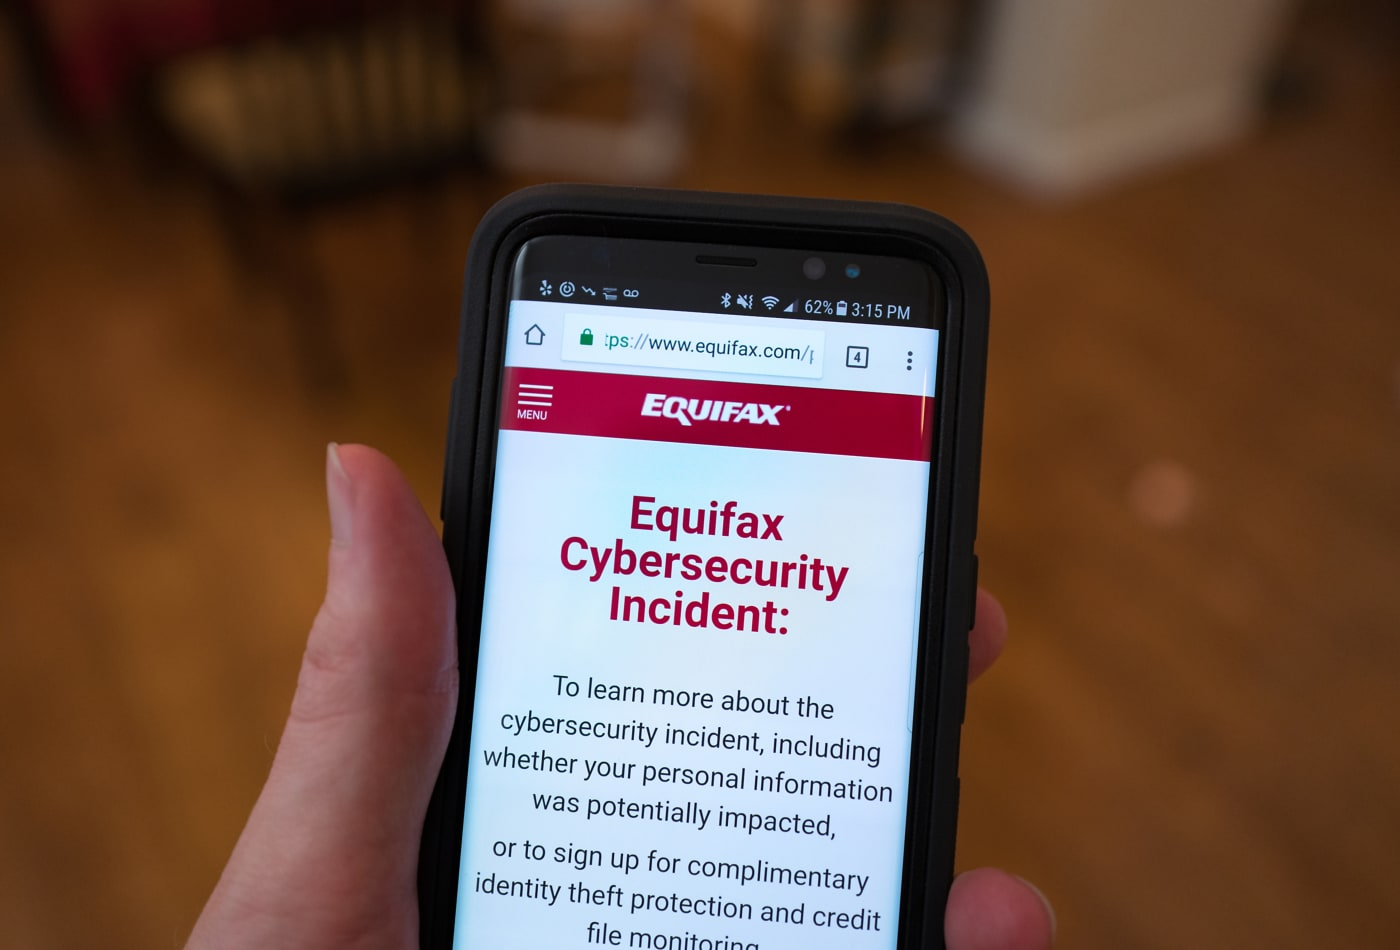 equifax claim form status  Equifax settlement: you need to update your claim to get $12